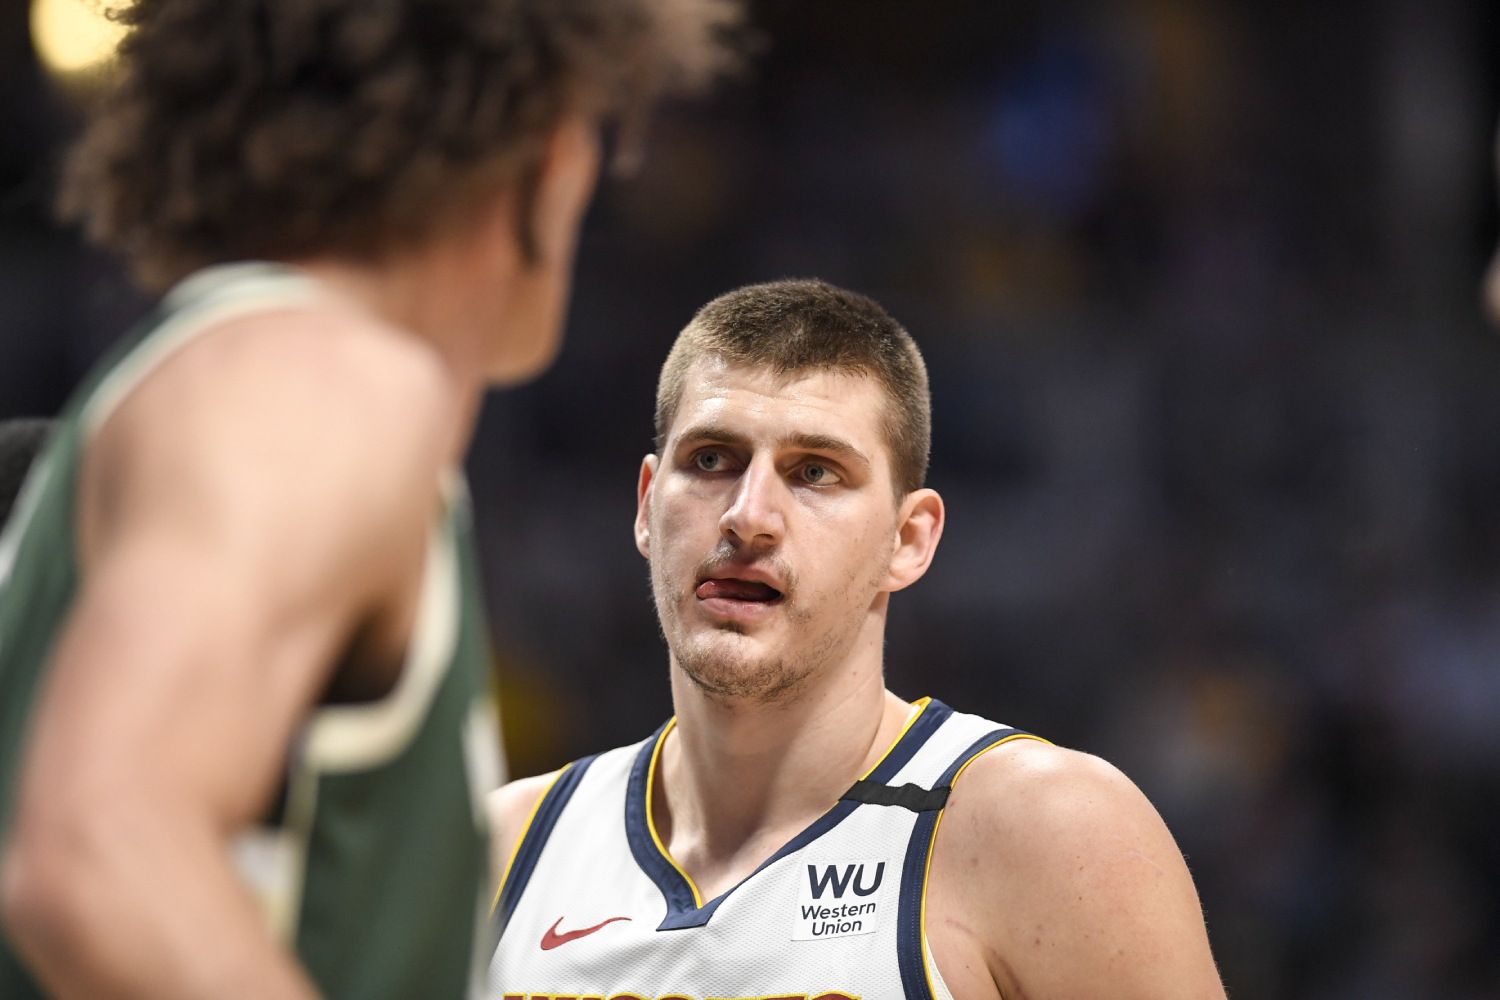 Nikola Jokic looking on during a Nuggets game